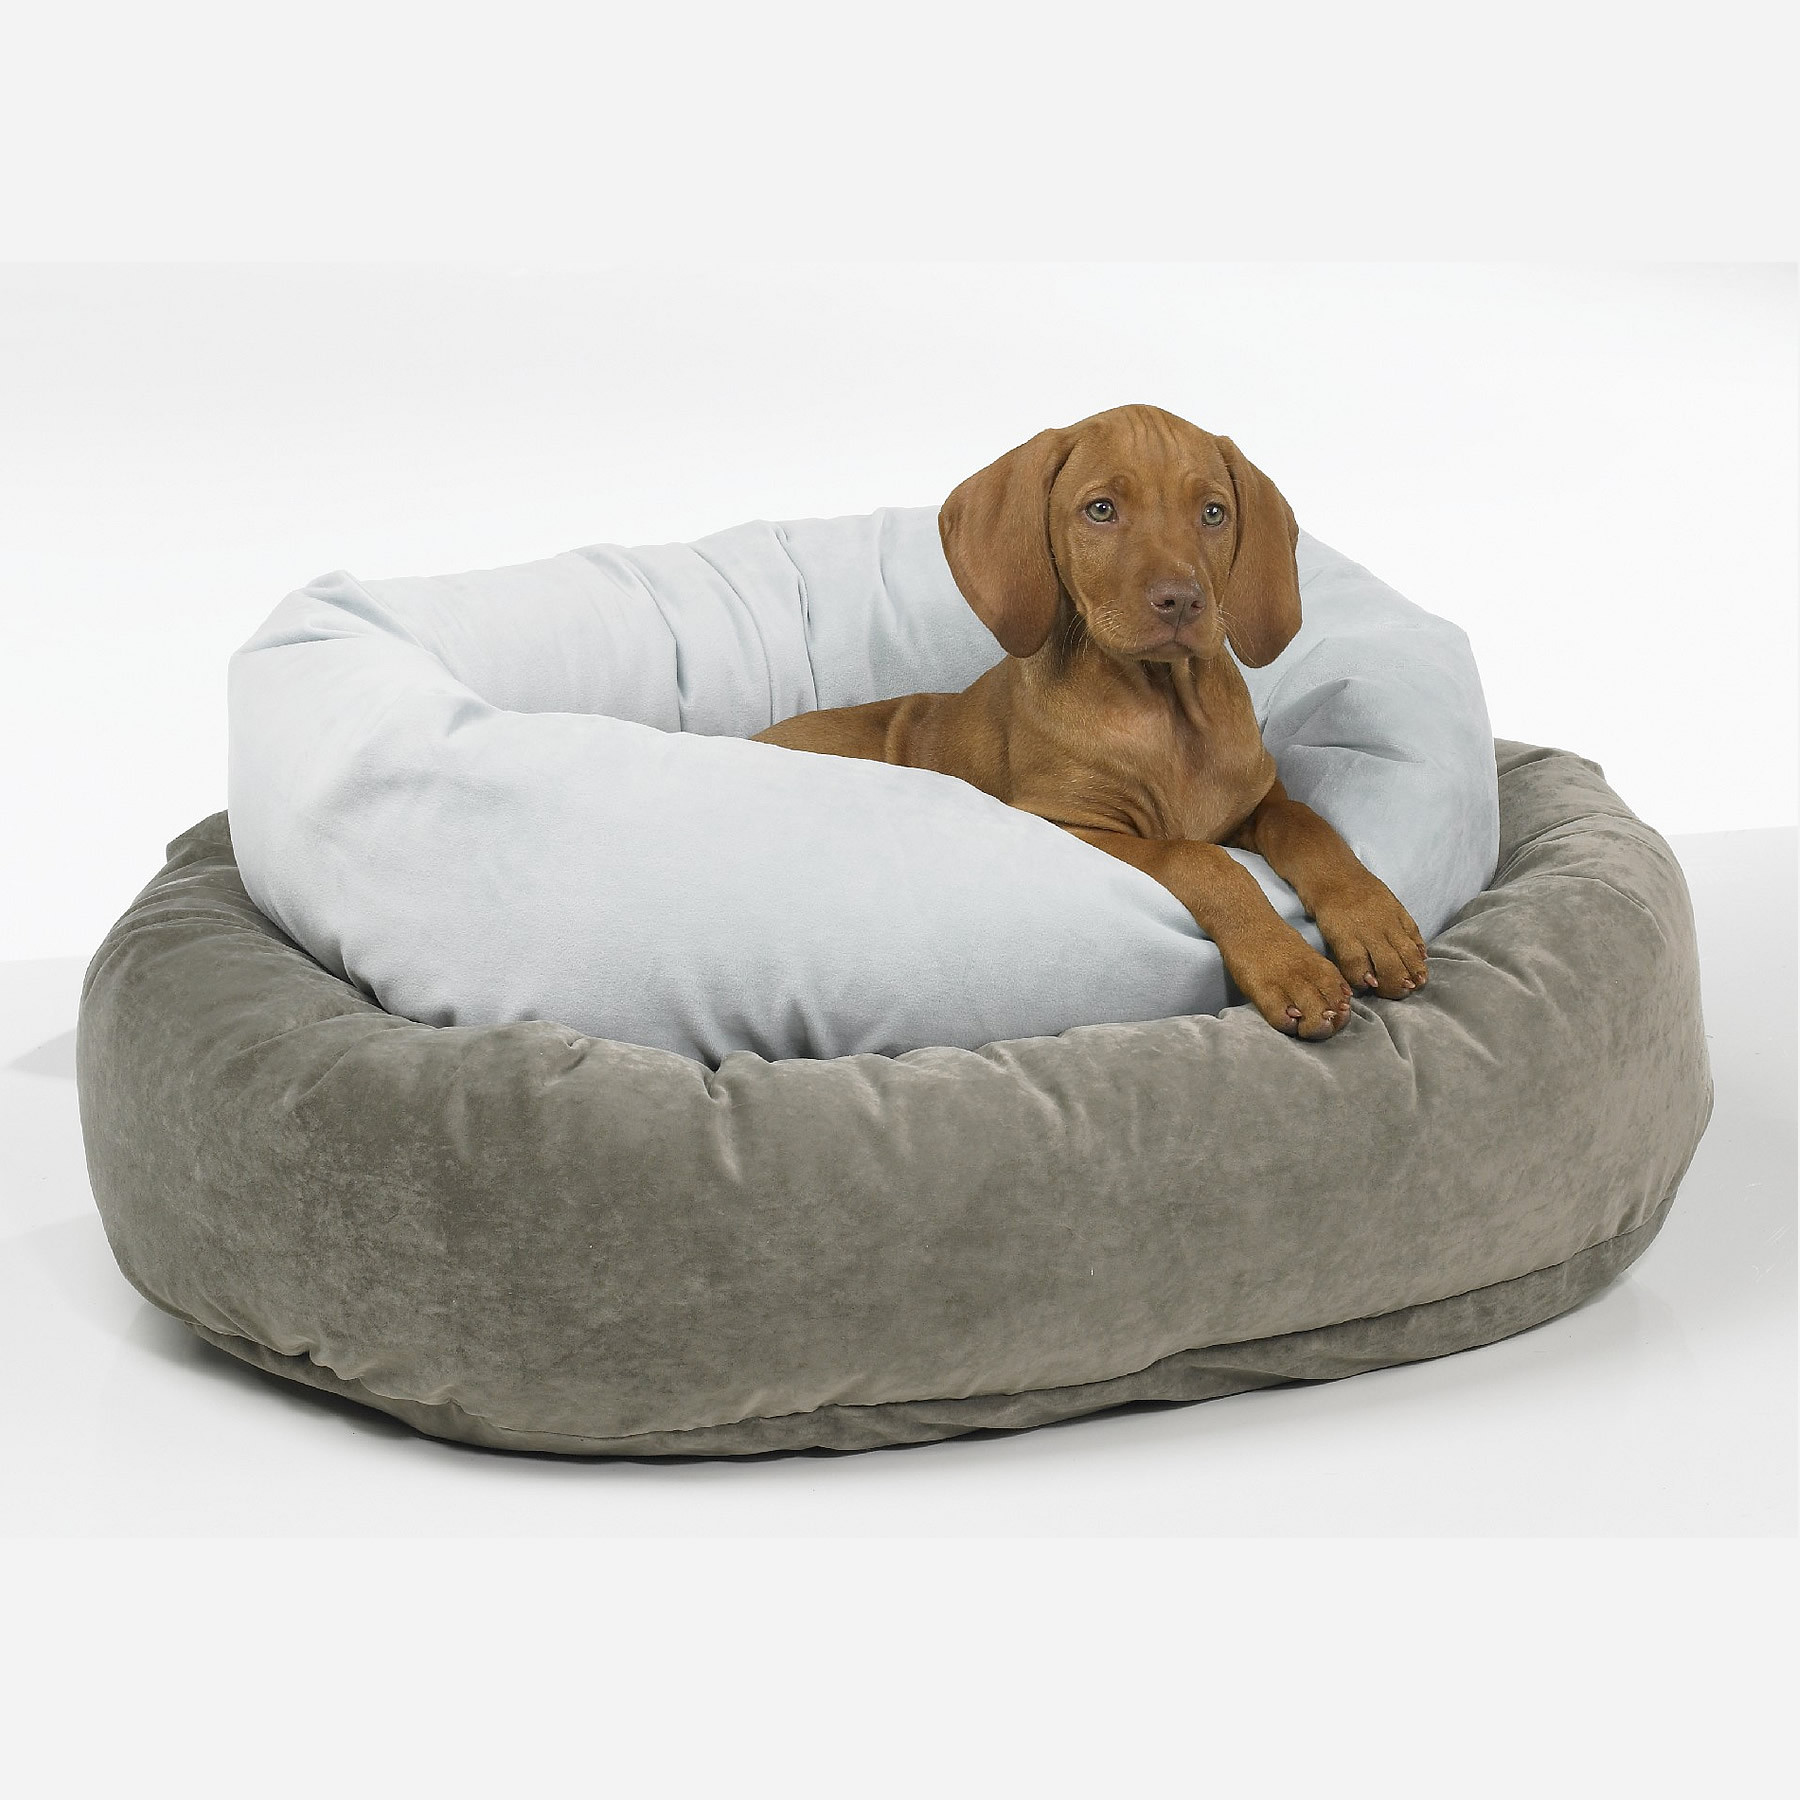 large  extra large dog beds for sale  precious pets paradise - bowsers platinum collection donut pet bed